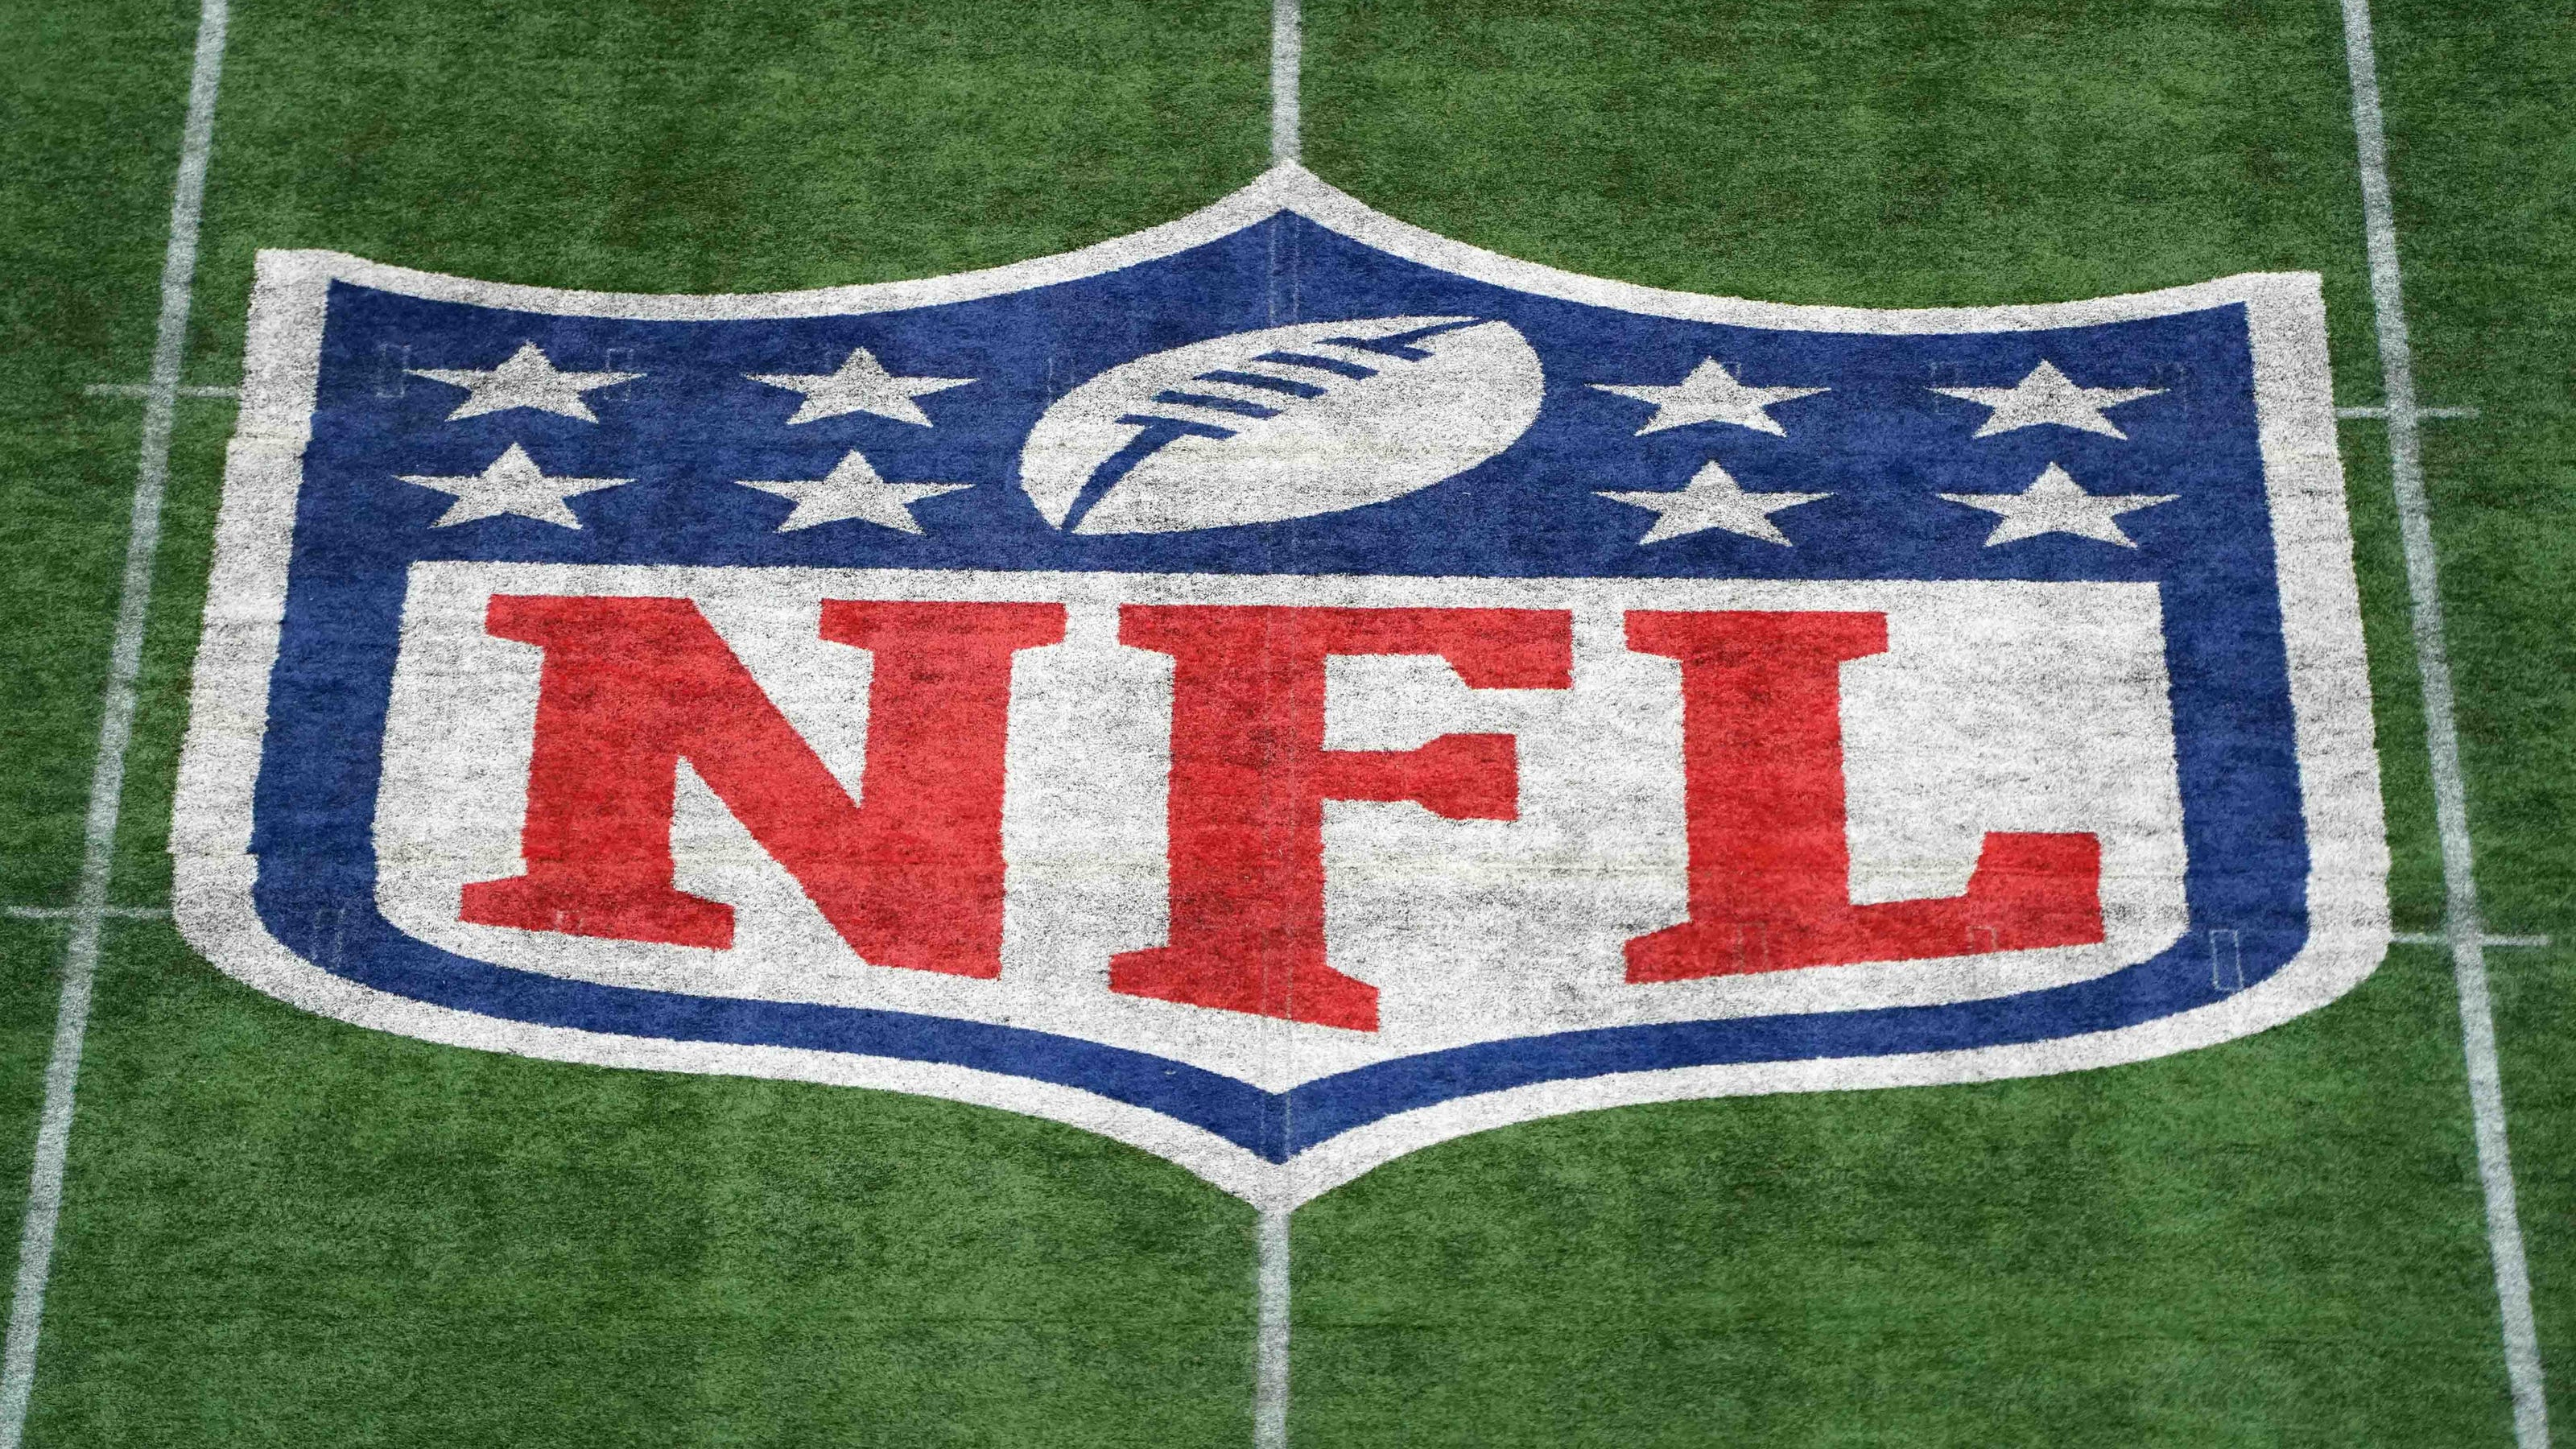 NFL Playoff Changes